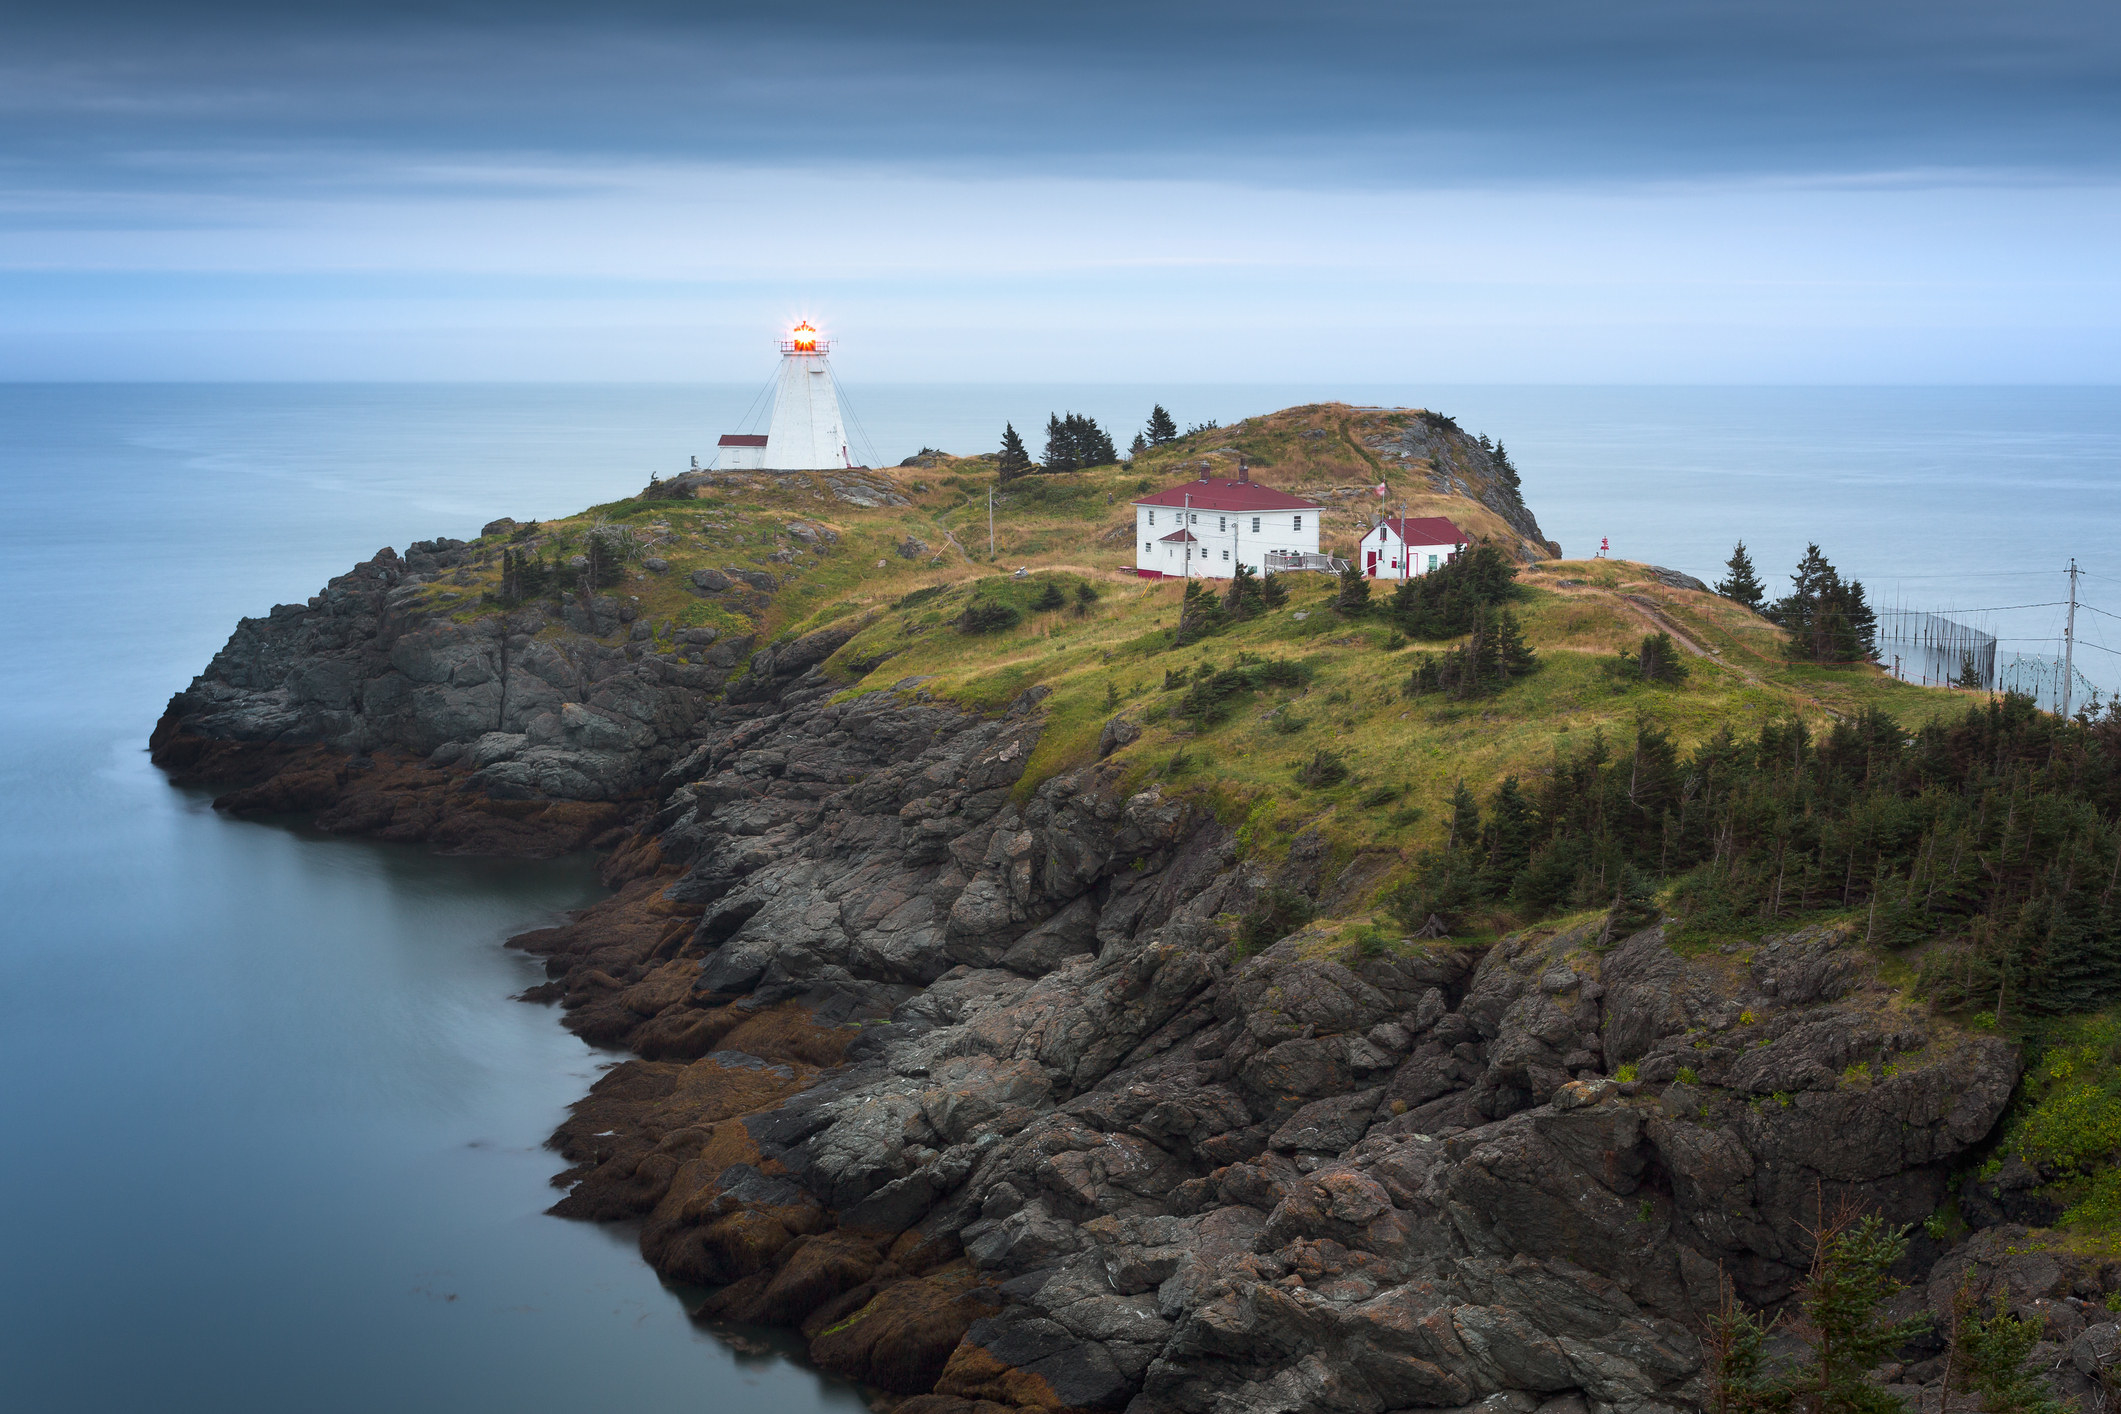 A lighthouse overlooking a bay in New Brunswick.